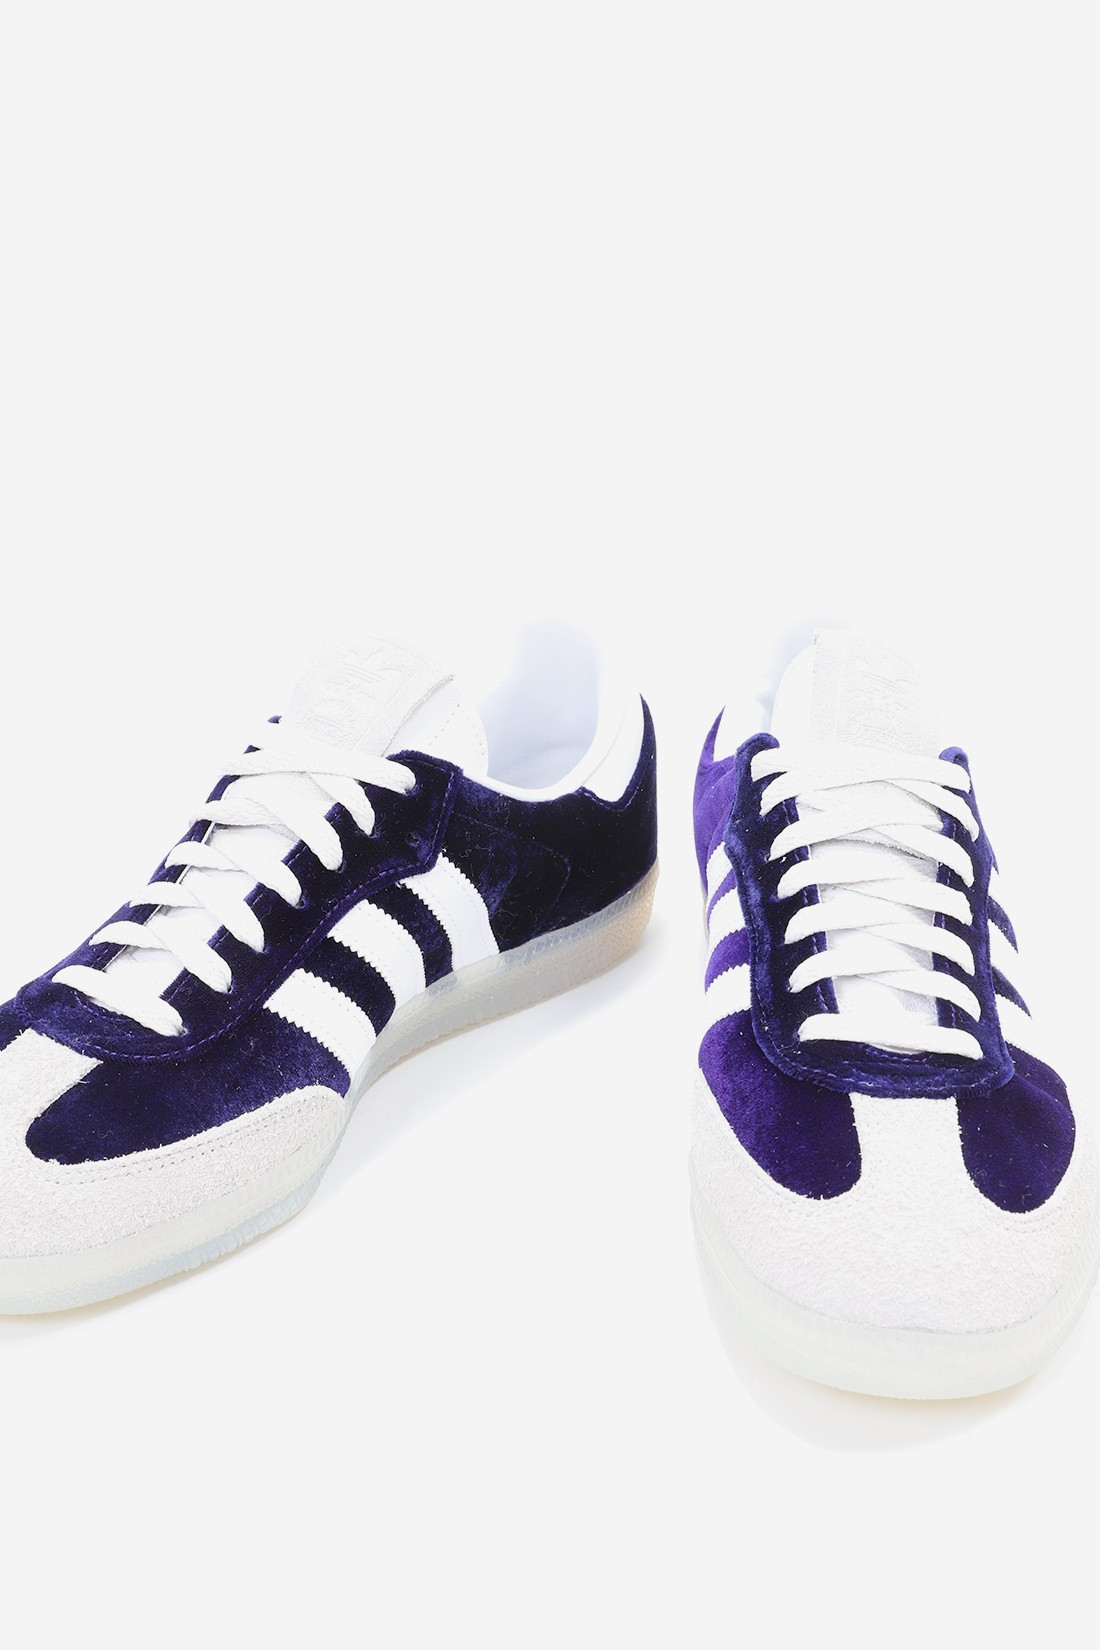 ADIDAS FOR WOMAN / Samba og Purple